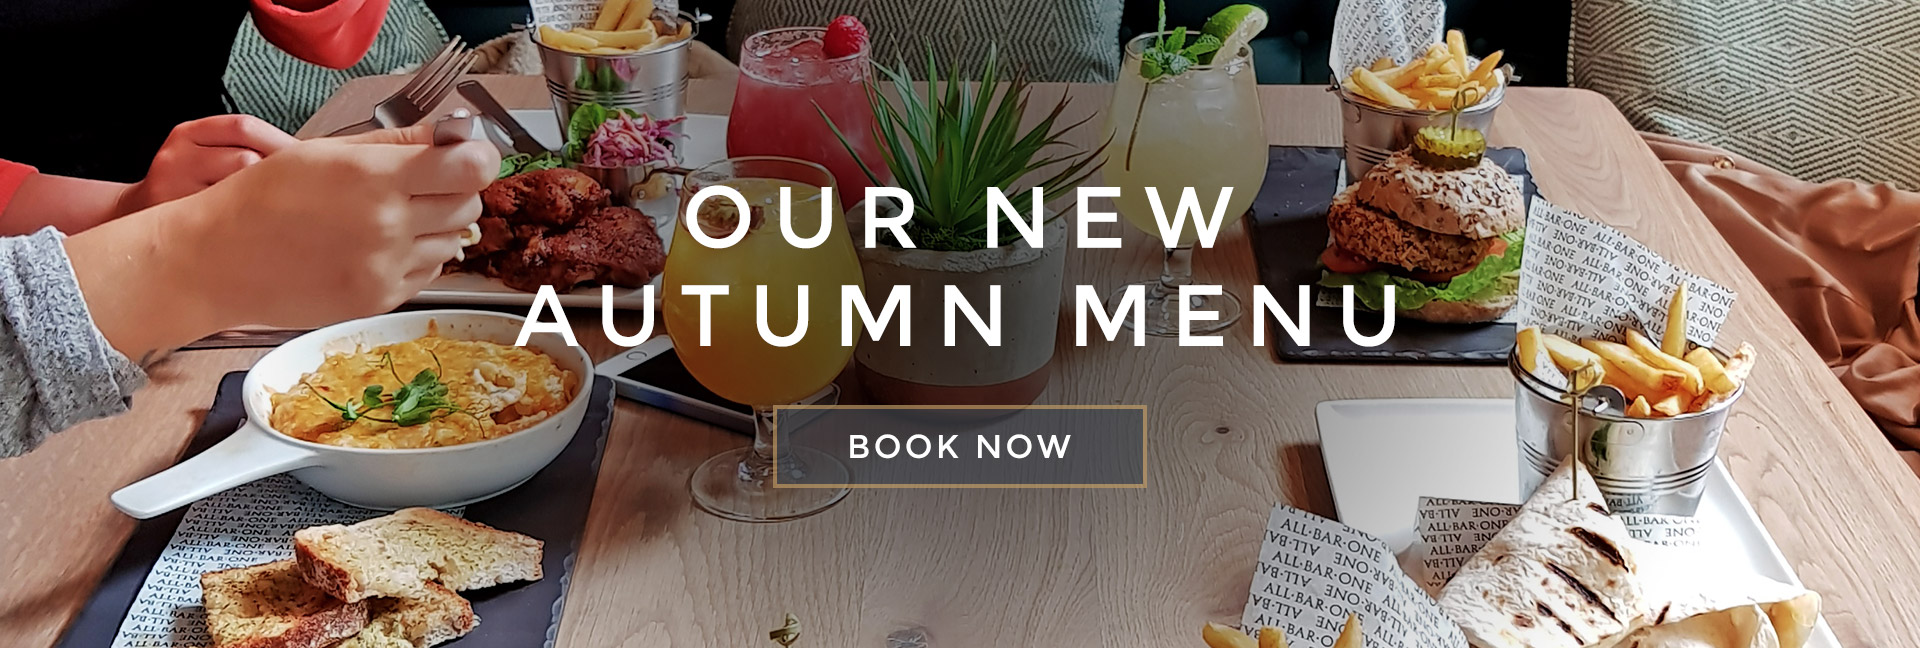 Our new Autumn menu at All Bar One Newhall Street Birmingham - Book now